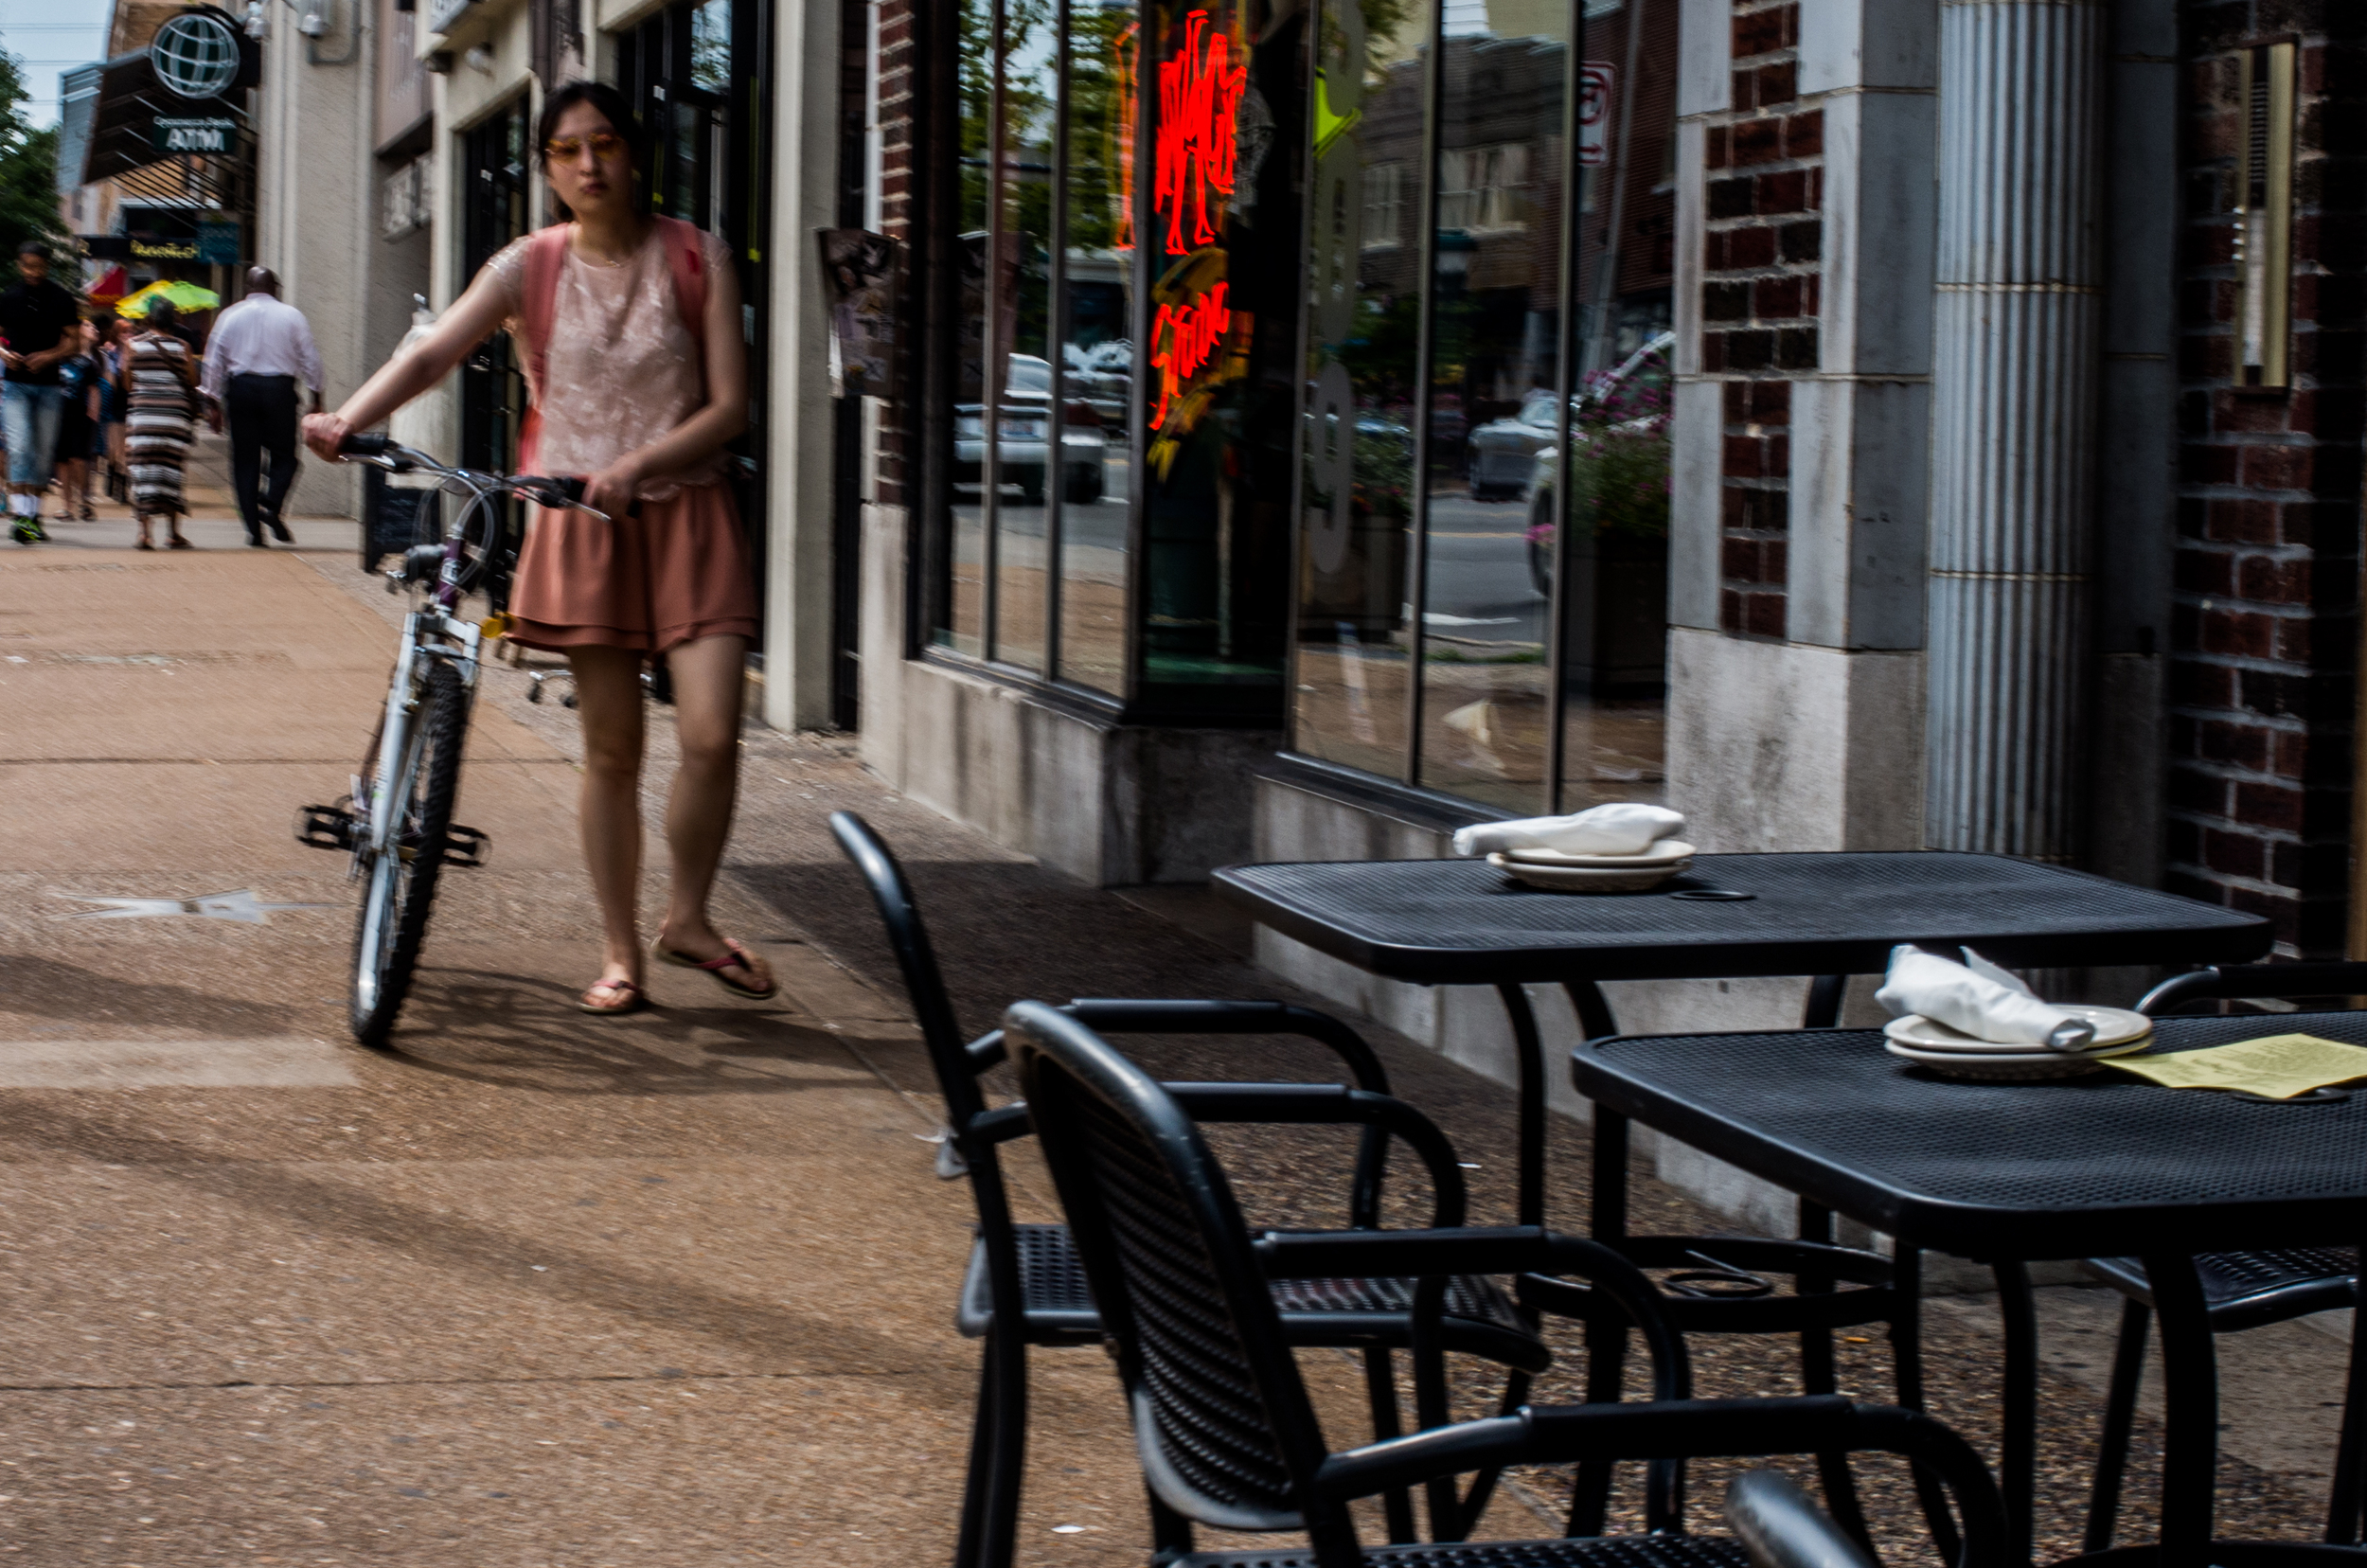 20140810-Walking around the Loop-PMG_5040-2.jpg